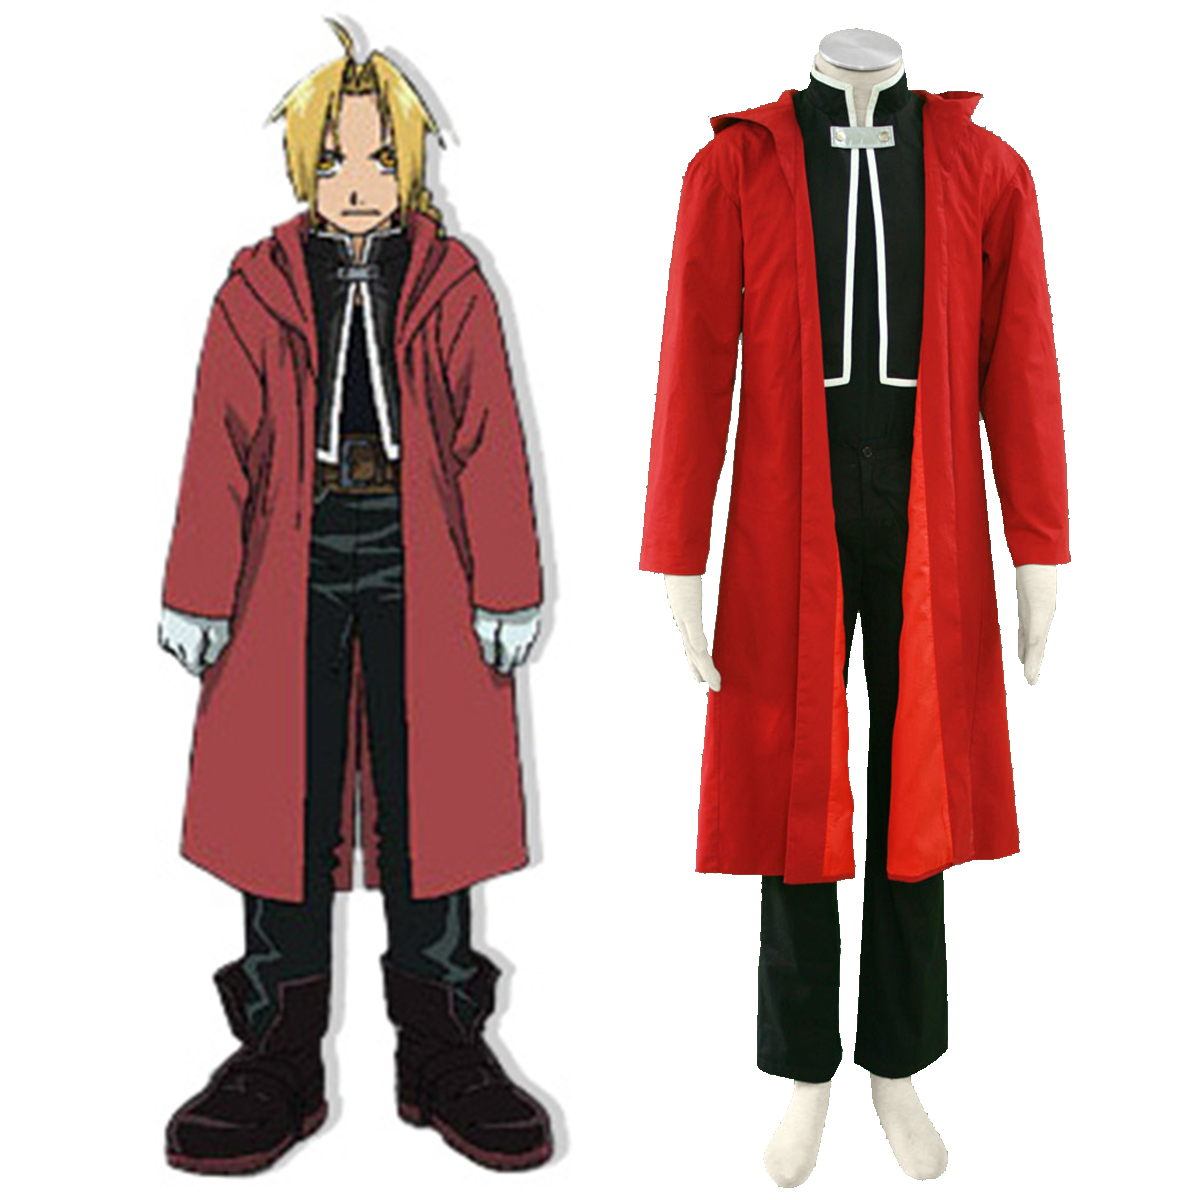 Fullmetal Alchemist Edward Elric 1 Anime Cosplay Costumes Outfit